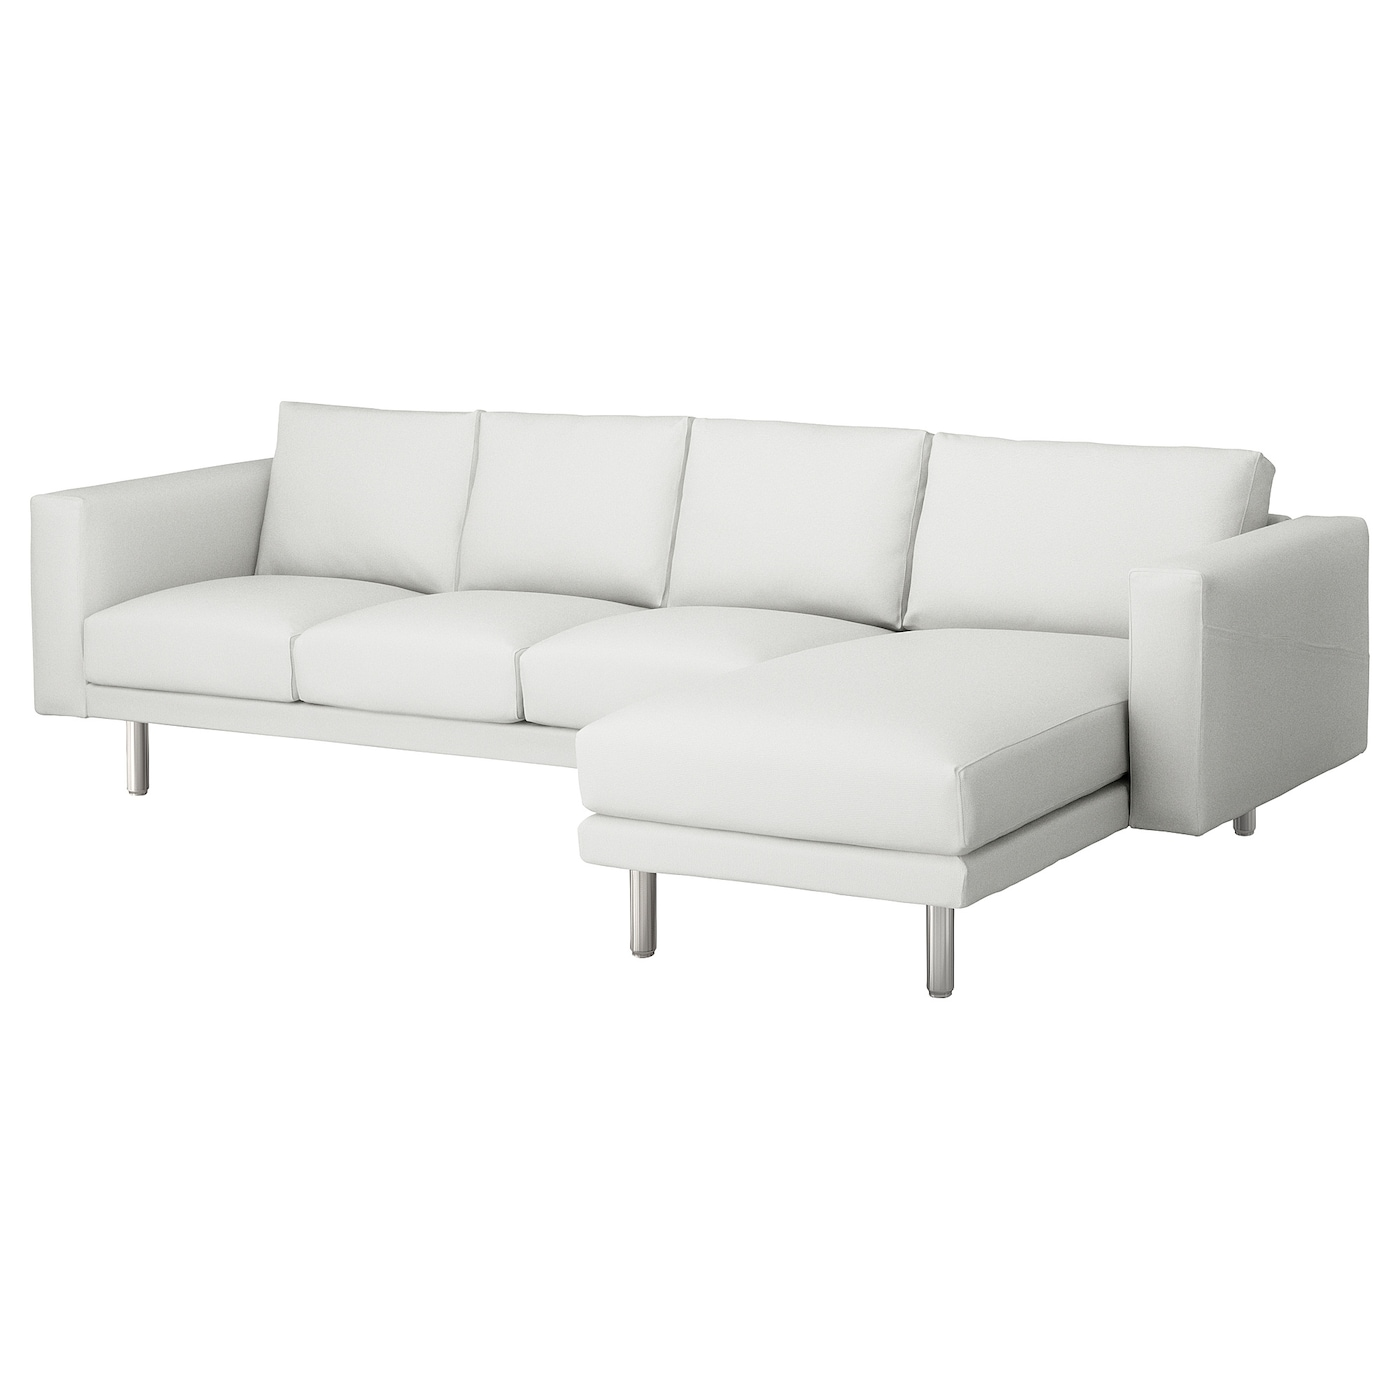 Norsborg three seat sofa and chaise longue finnsta white for Chaise longue sofa